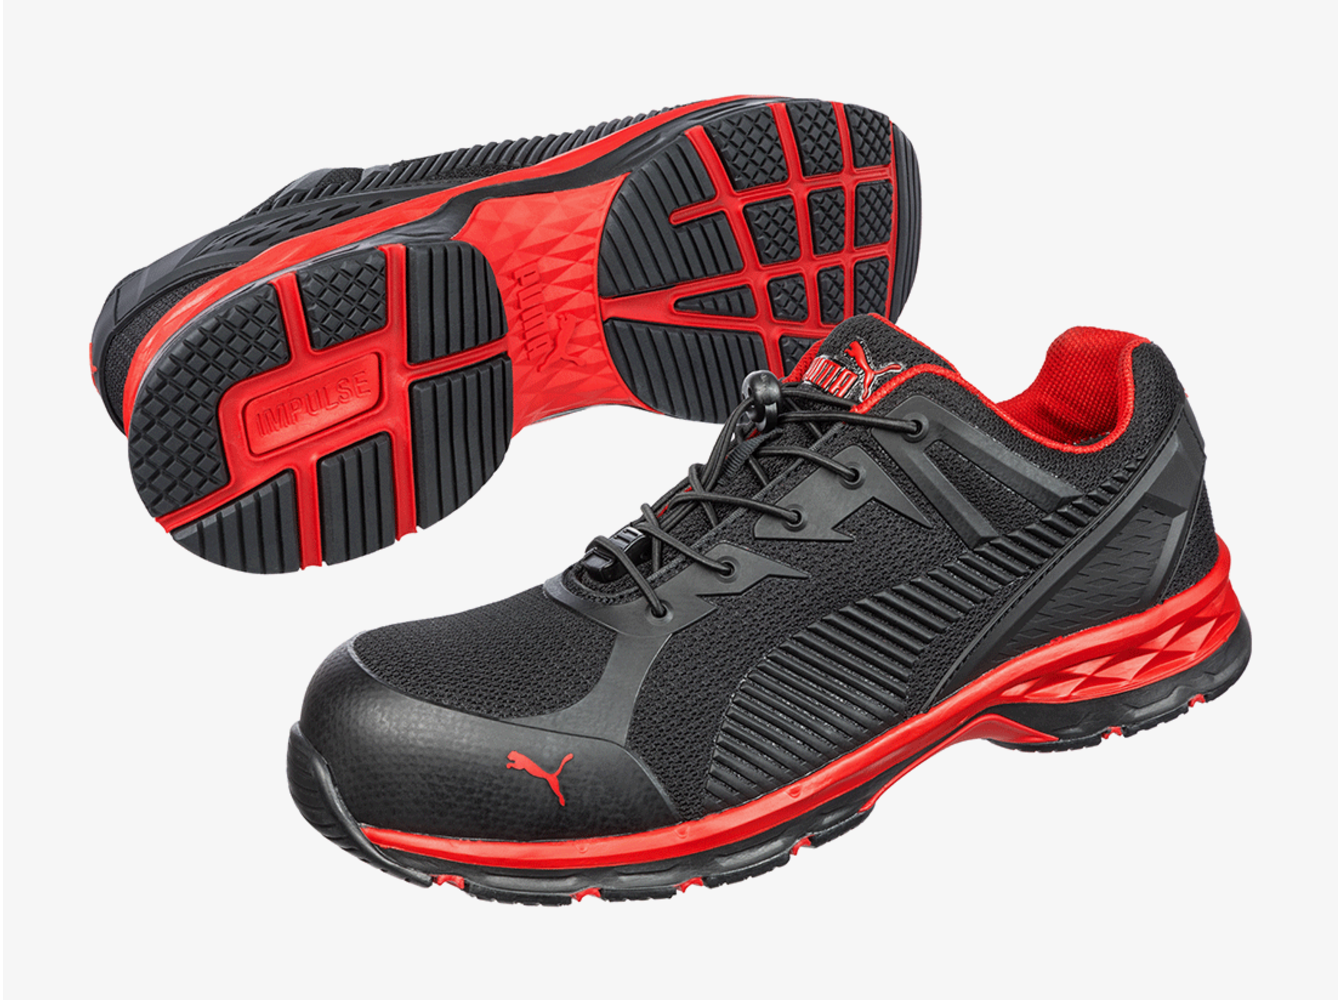 Puma 64.389.0 Fuse Motion 2.0 Red Low S1P